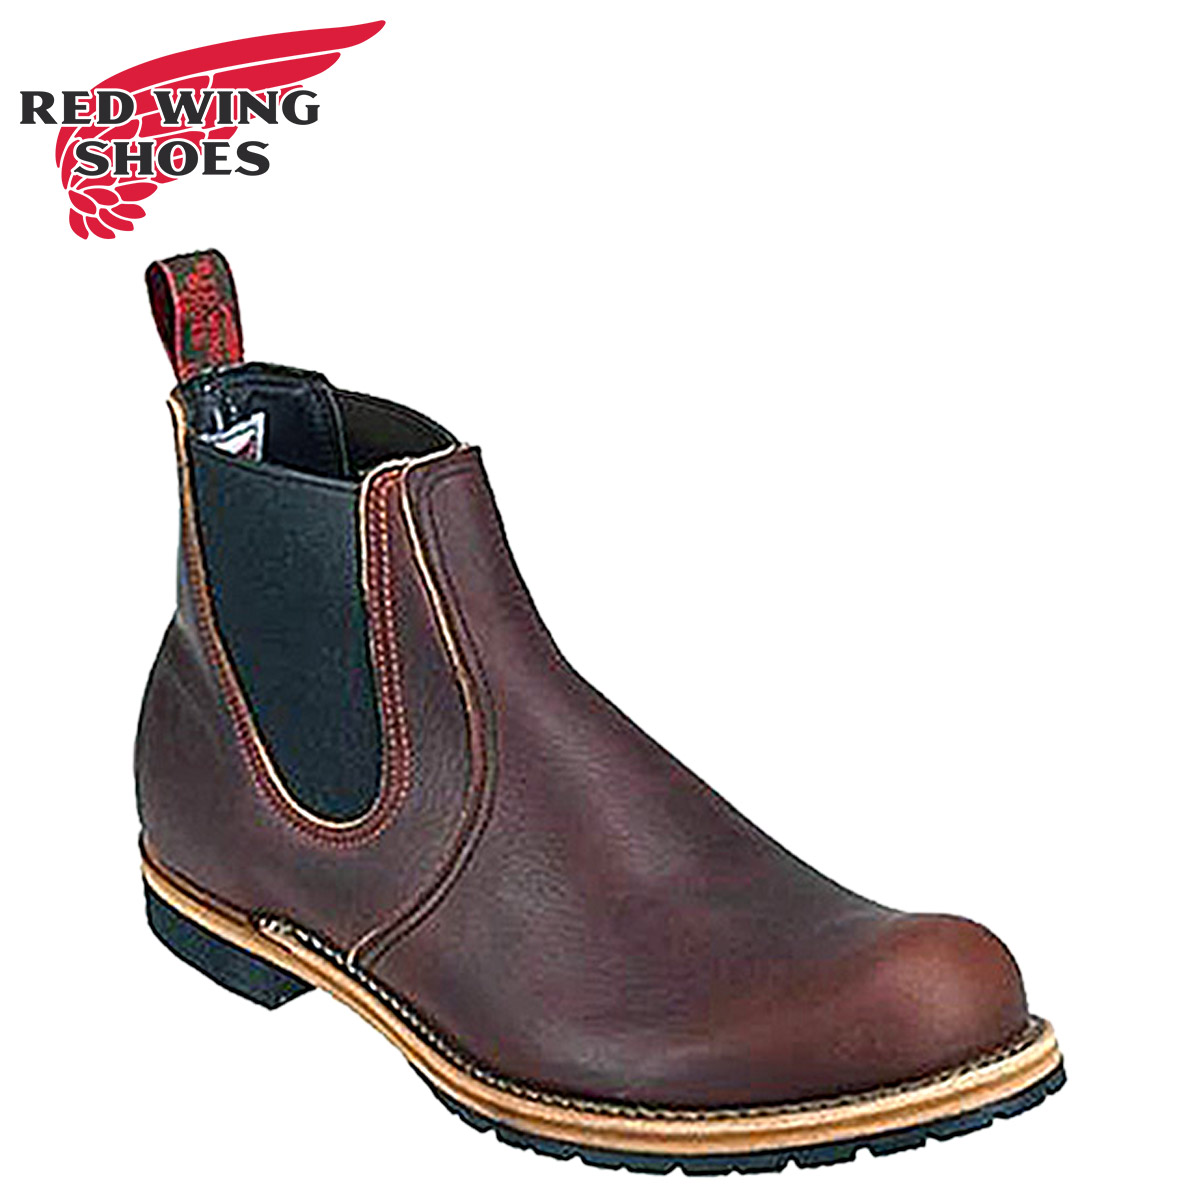 SneaK Online Shop | Rakuten Global Market: Redwing RED WING ...